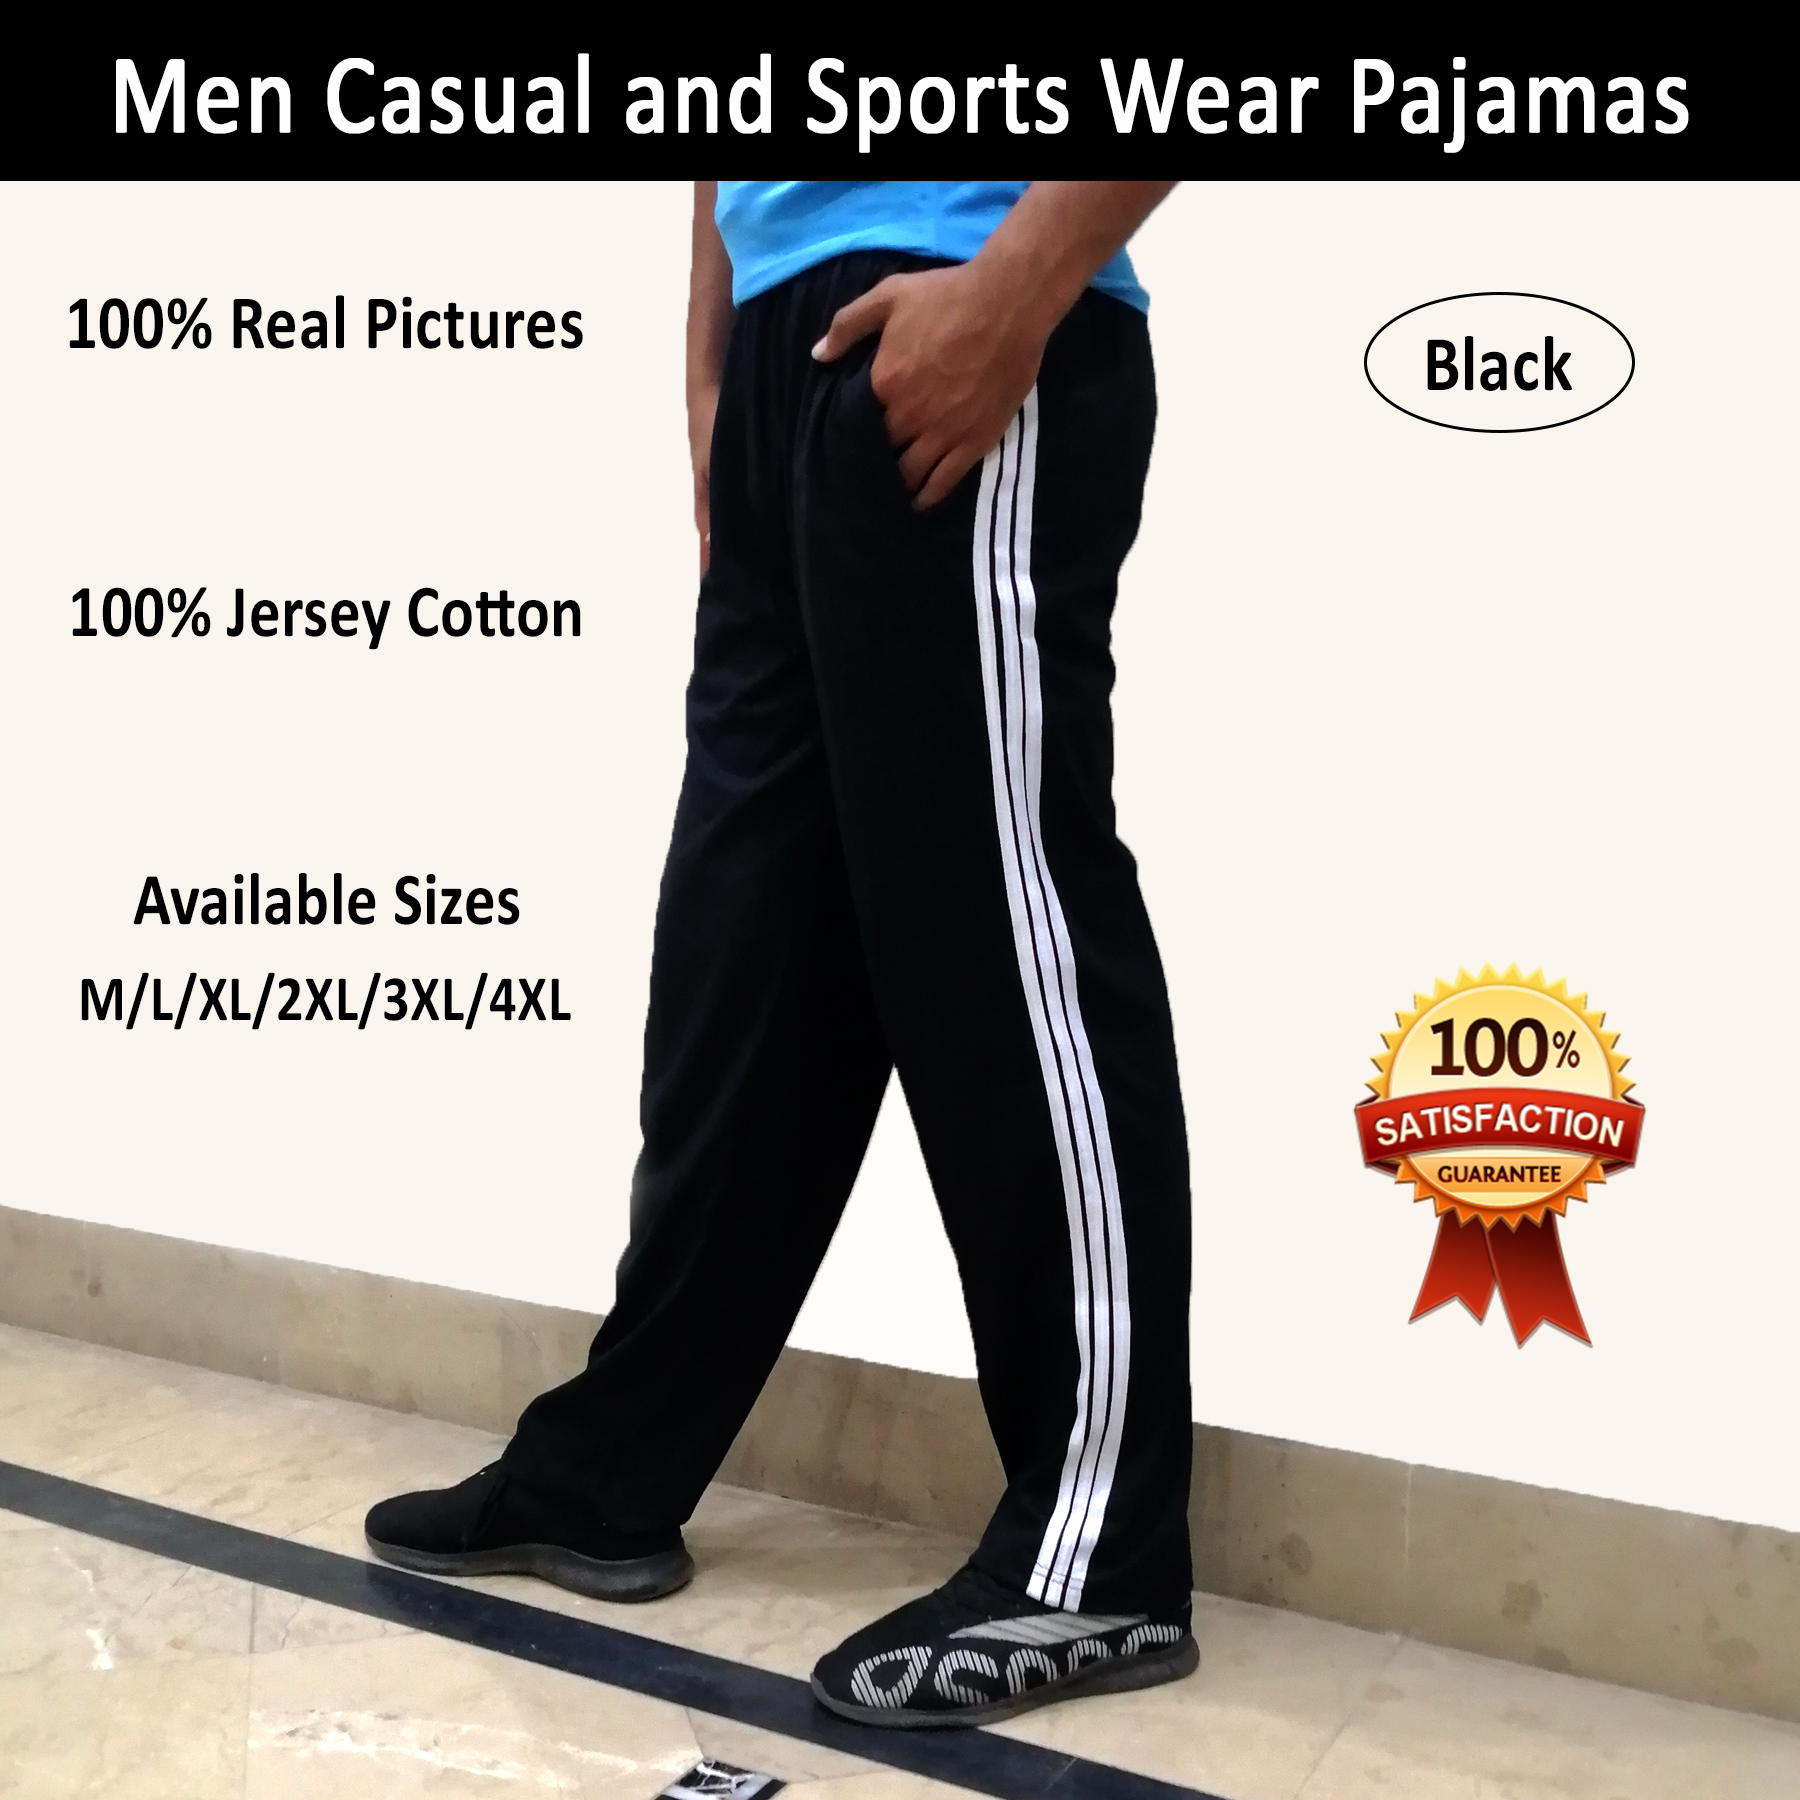 Men's Sports Trouser in Full Length with 2 Pockets and Side Strips as Boys Fitness Pants for Jogging and Track Pants in M to 5XL Sizes in Black and Gray Colors